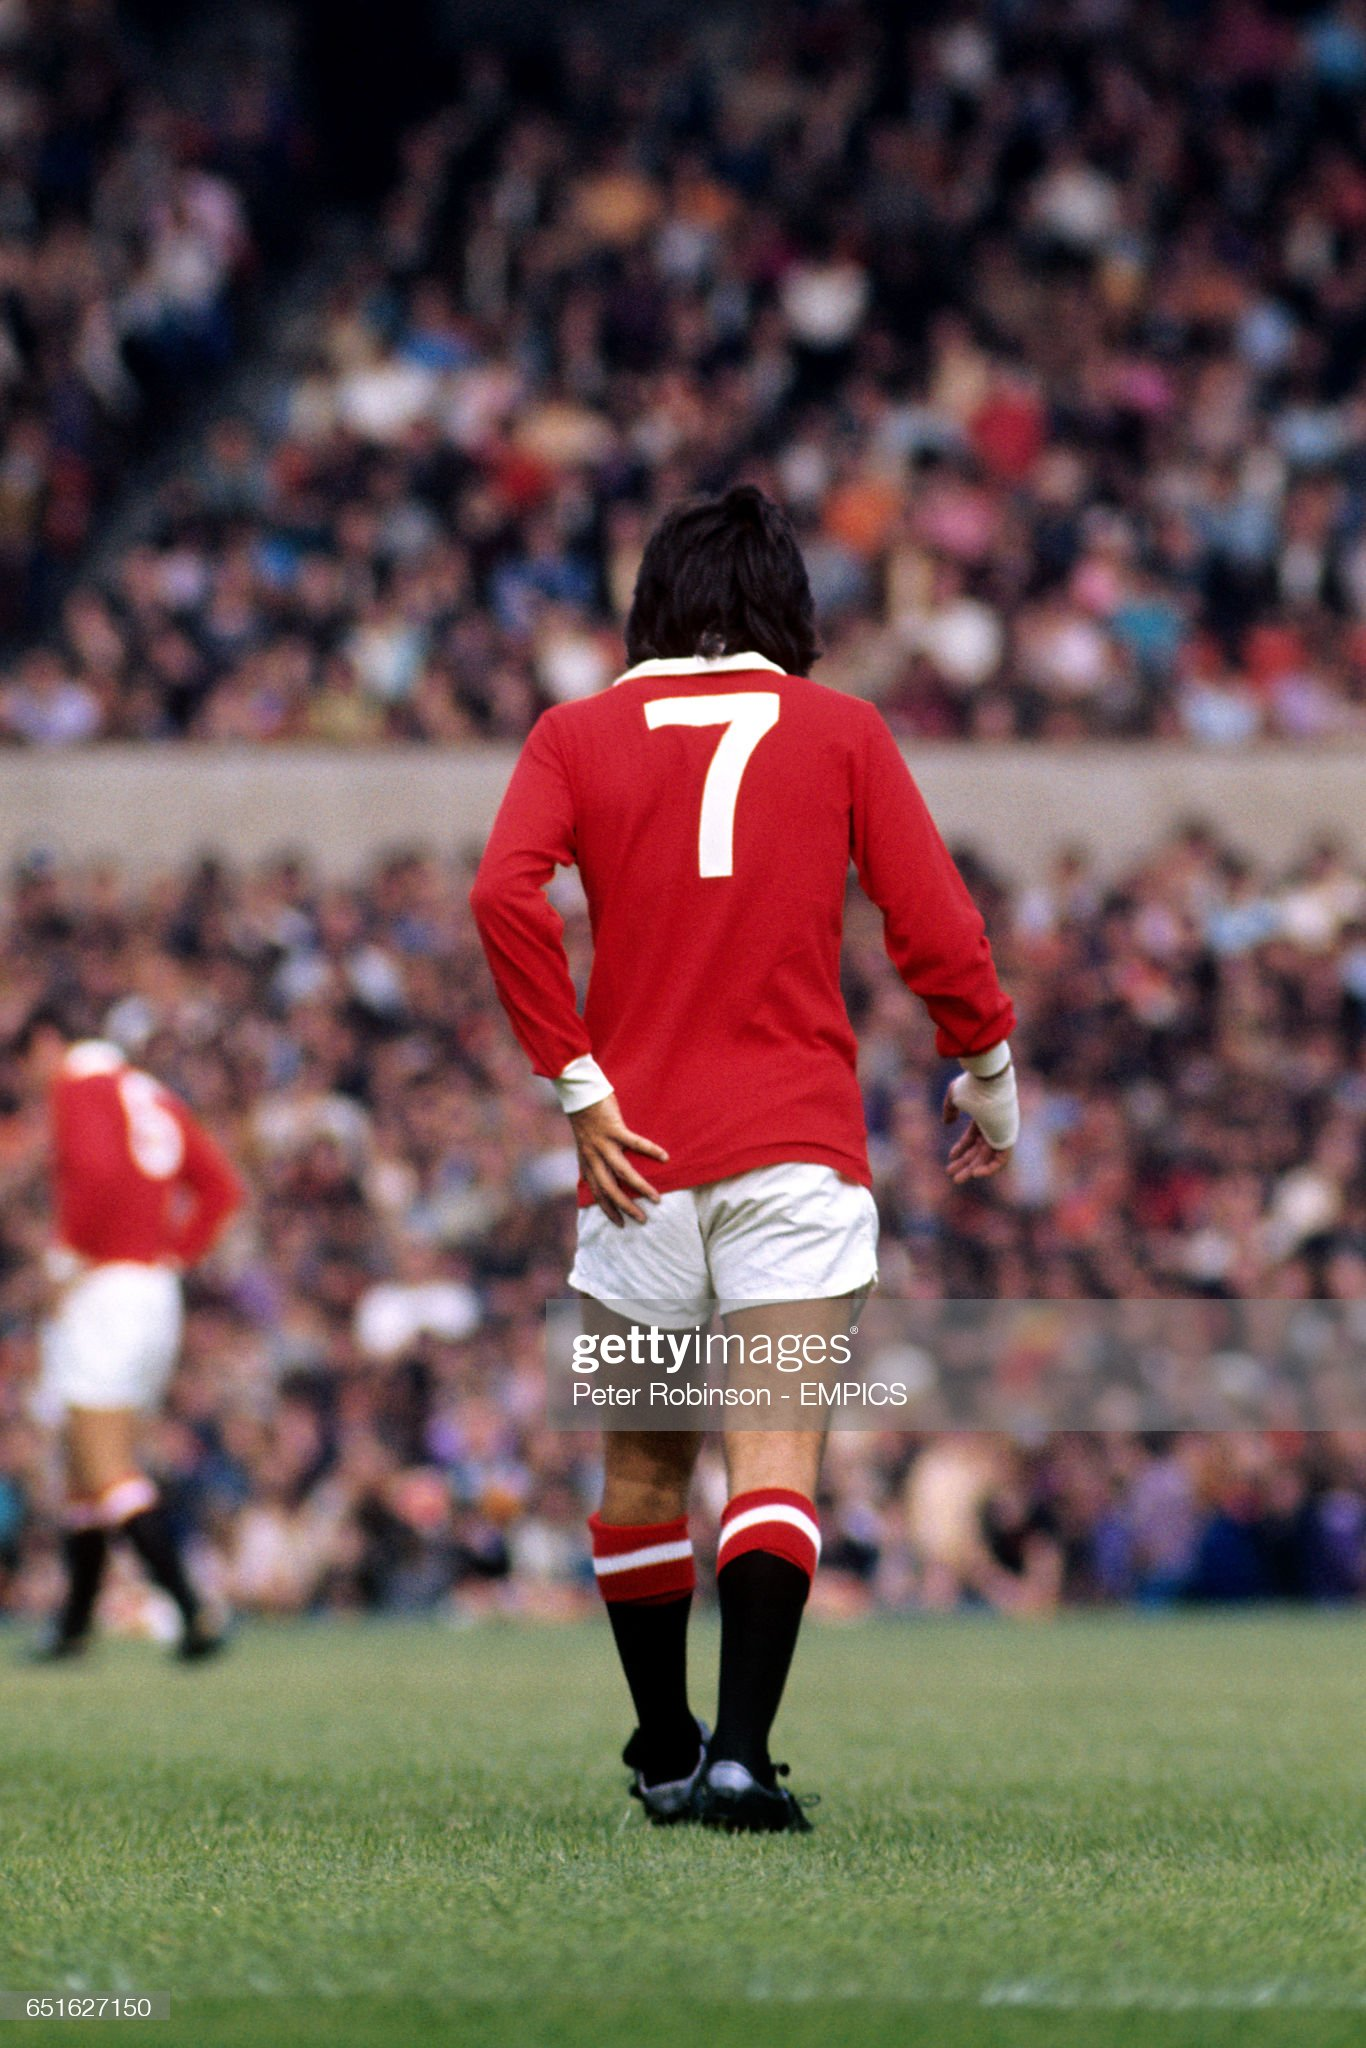 george-best-manchester-united-picture-id